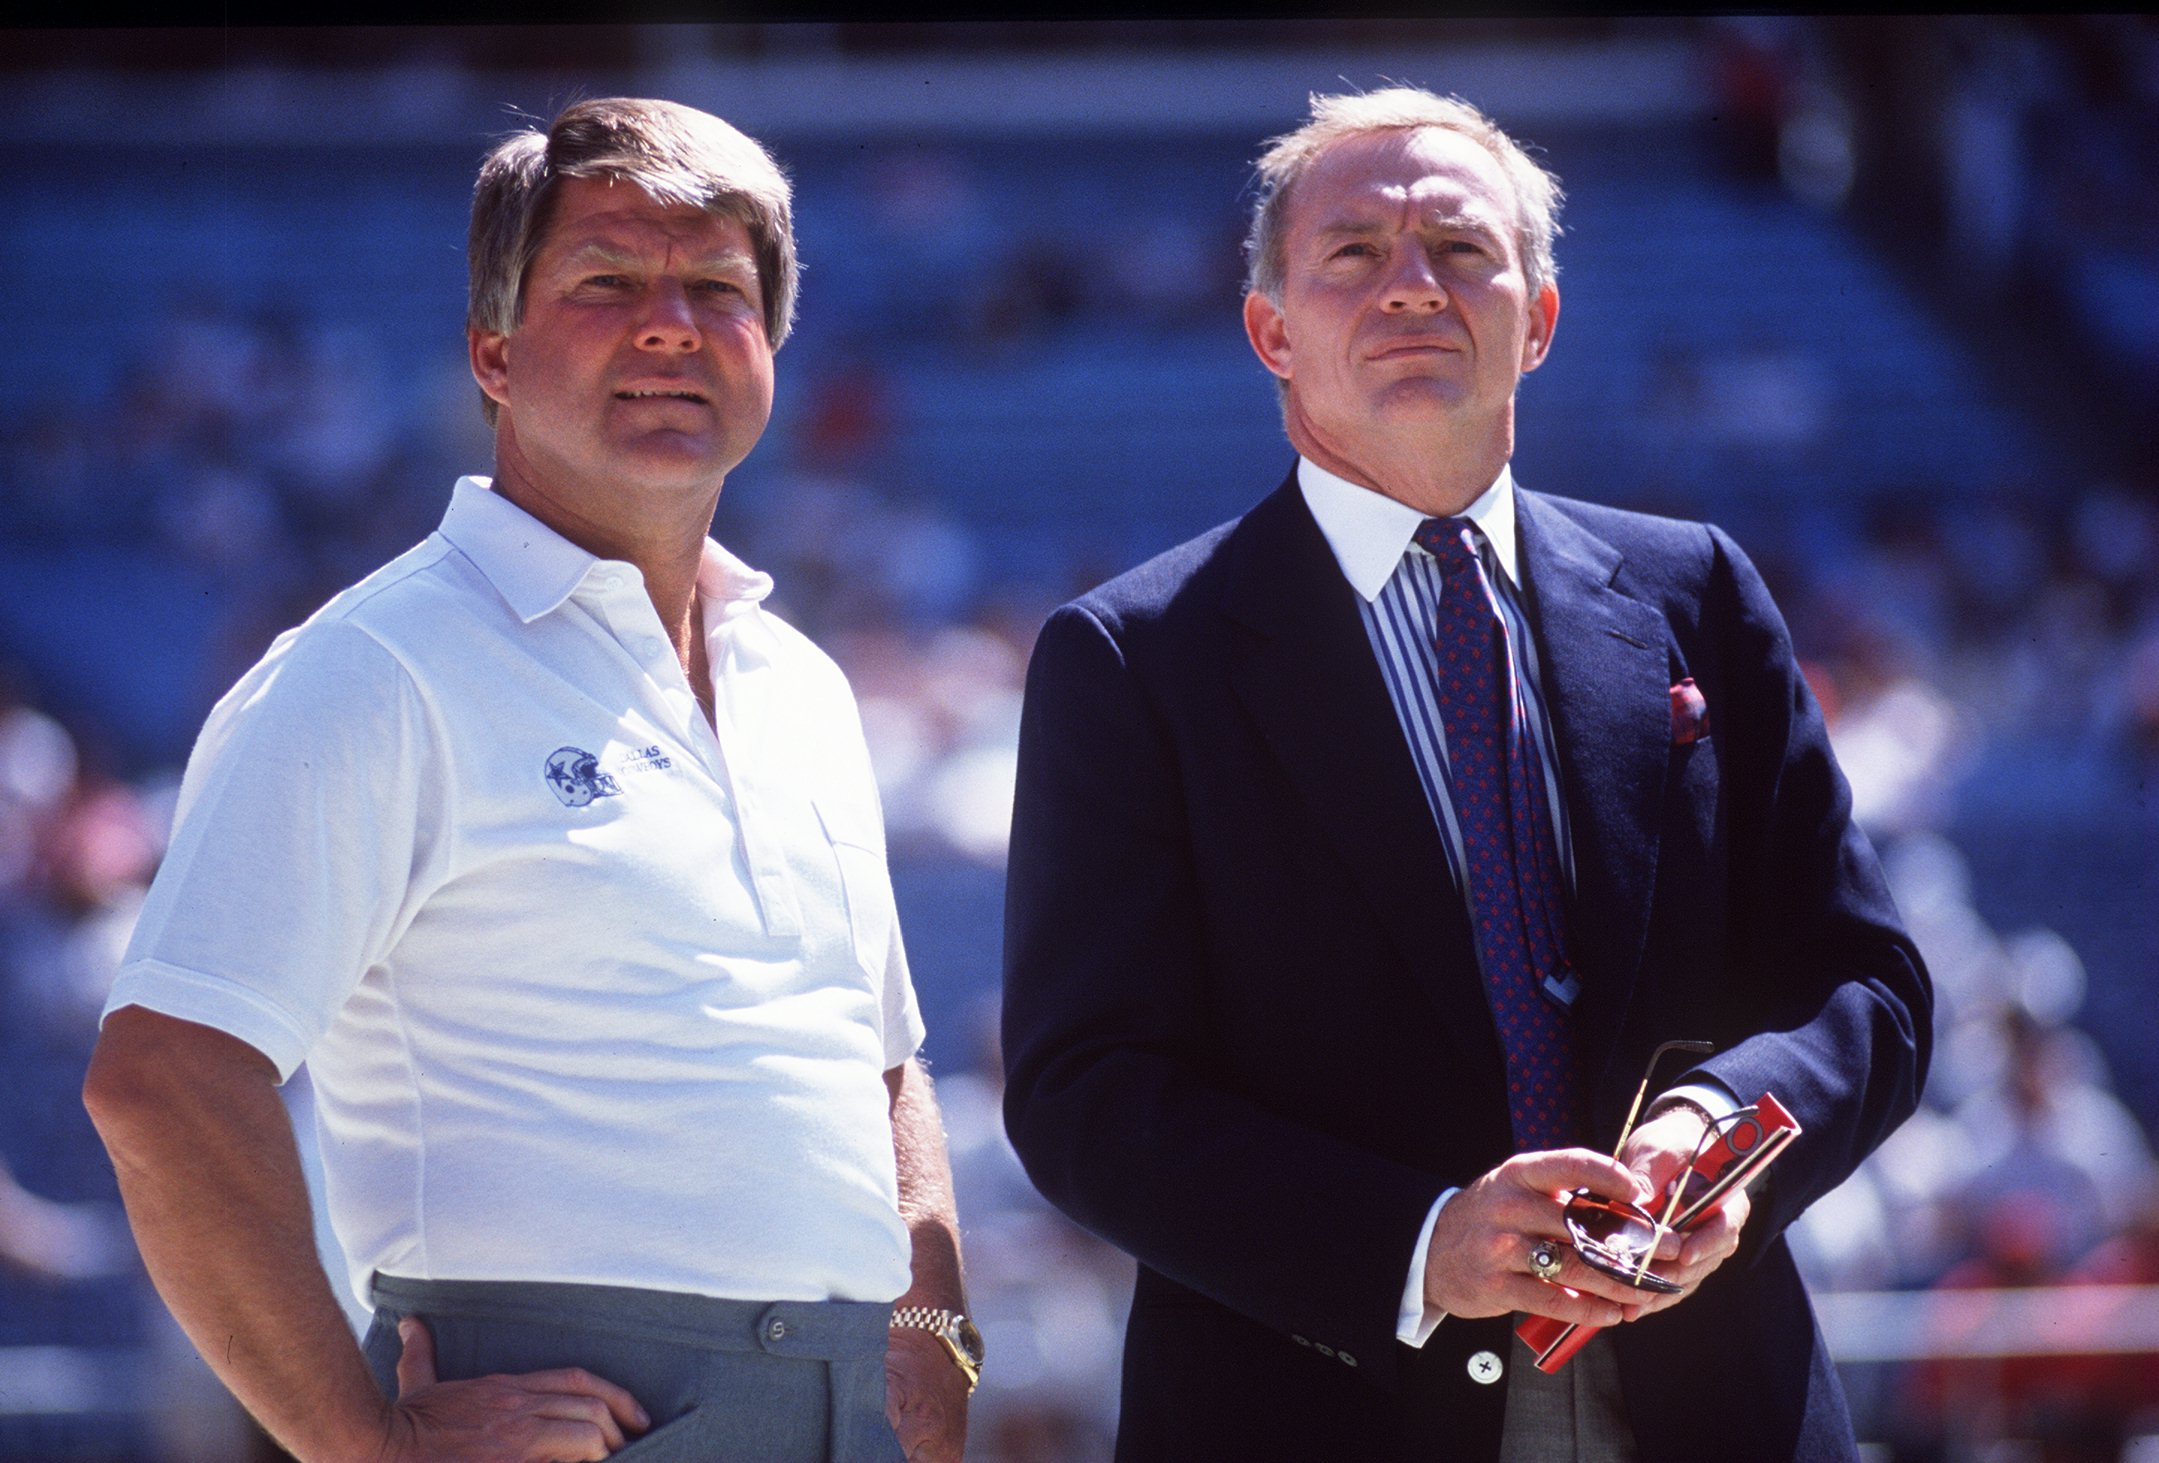 1990:  Head coach Jimmy Johnson (left) and owner Jerry Jones of the Dallas Cowboys stand together prior to the start of a Cowboys game at Texas Stadium in Irving, Texas.  Mandatory Credit: Allen Dean Steele/Allsport